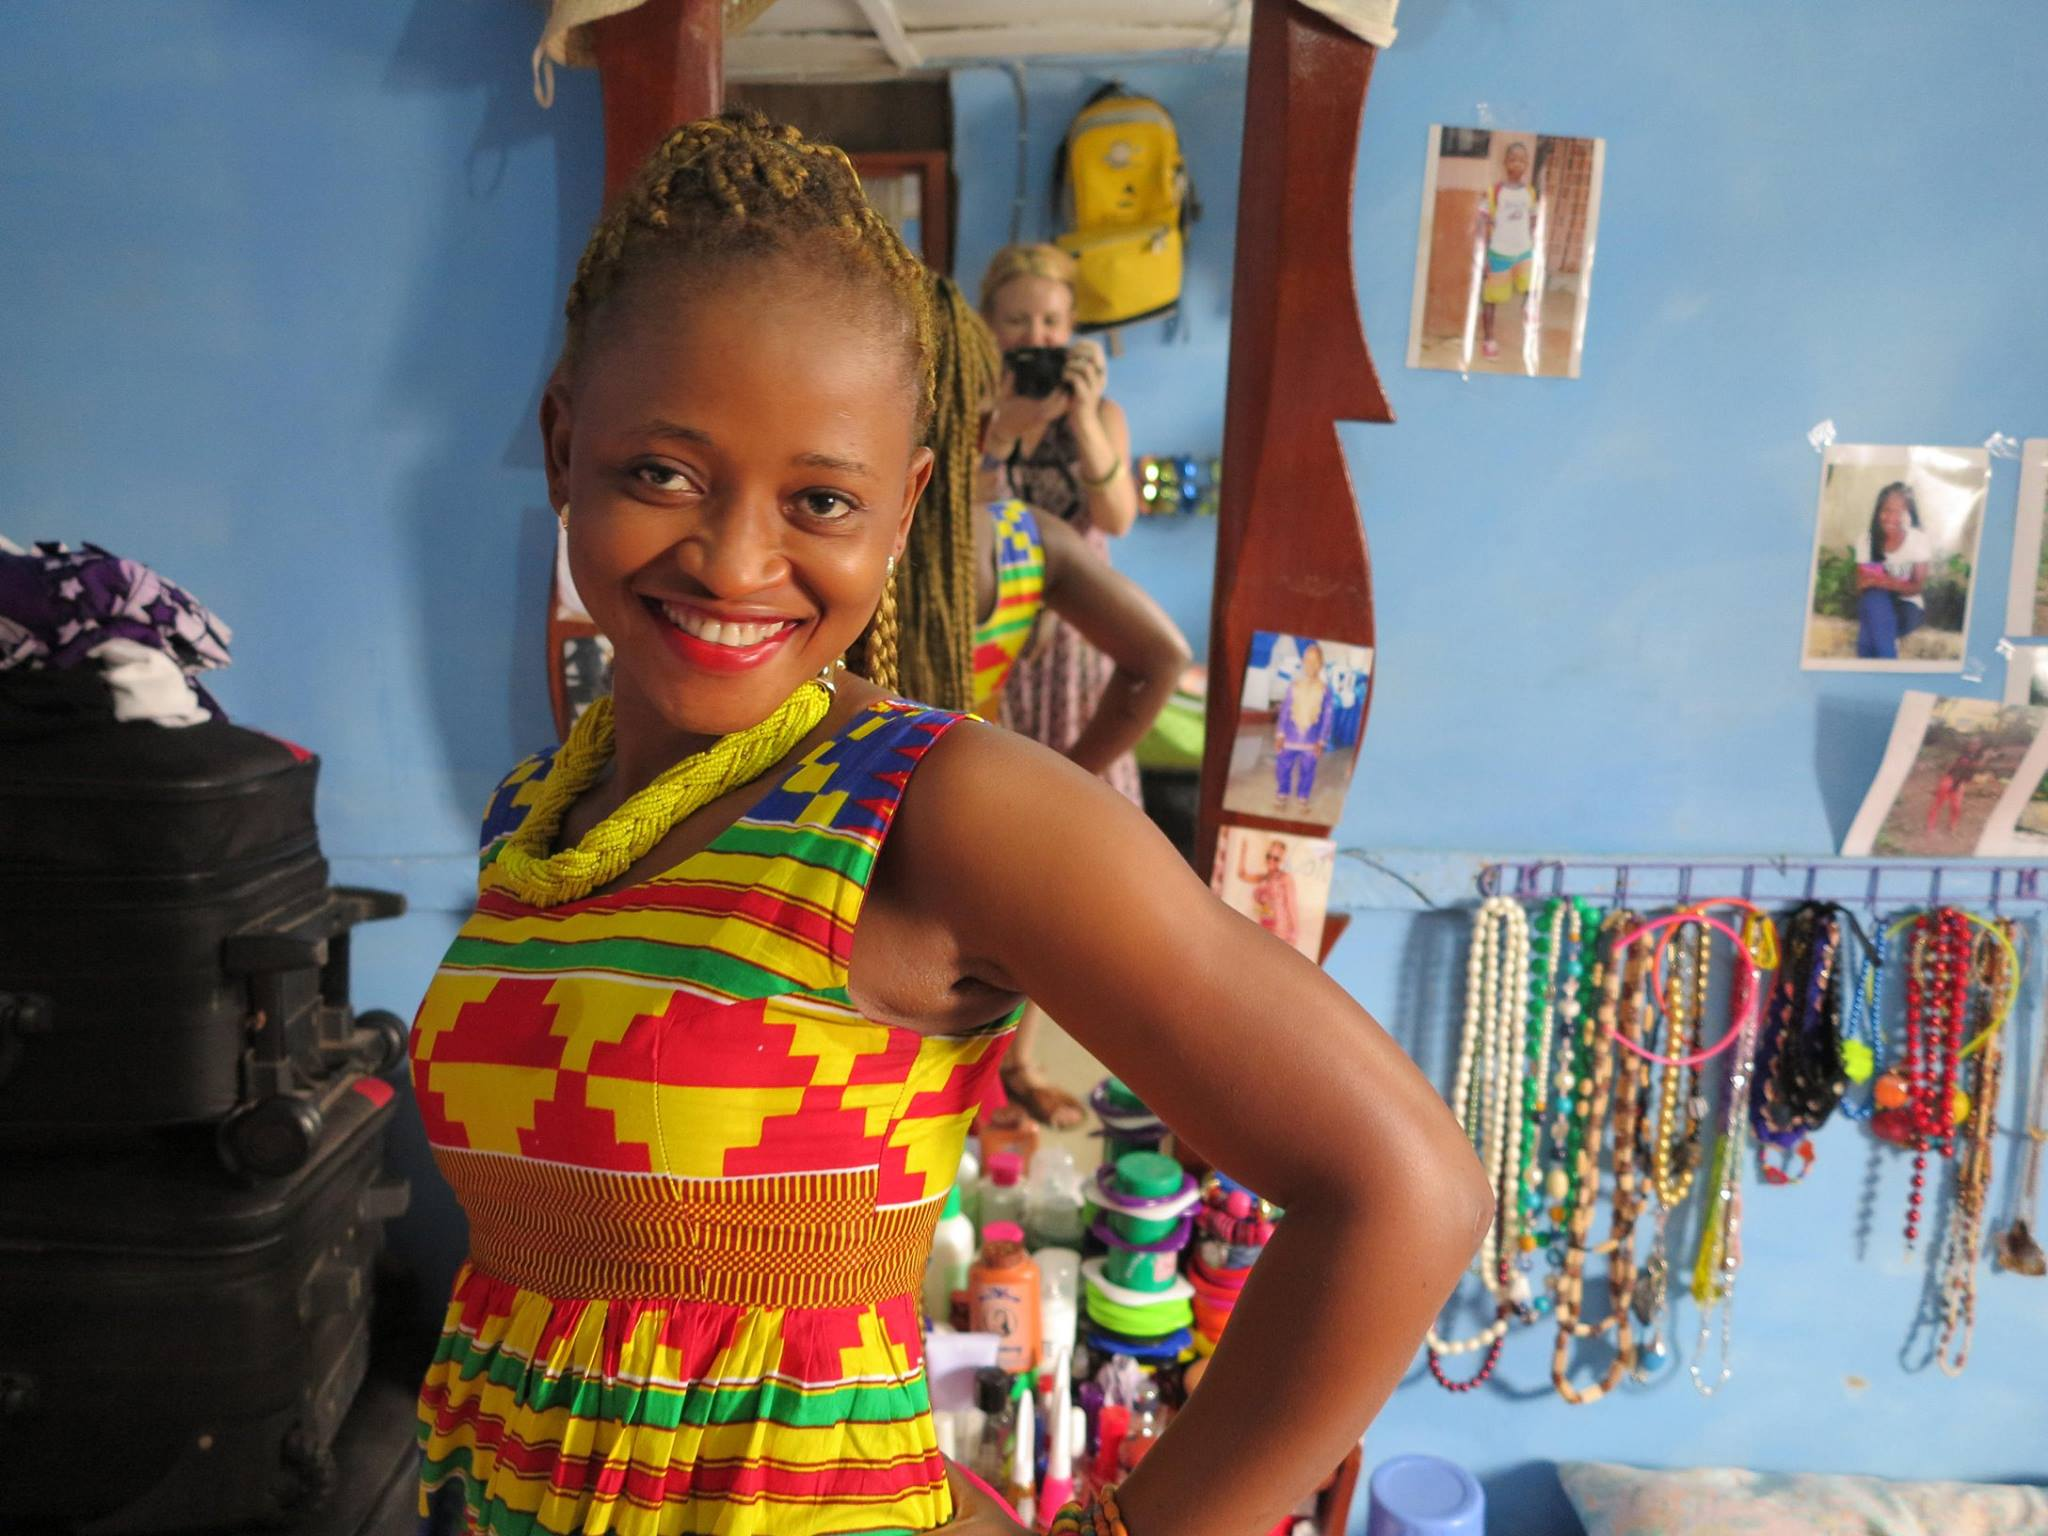 Watch Jo Dunlop's amazing 6 part documentary series, 'Freetown Fashpack' on ABC iview.